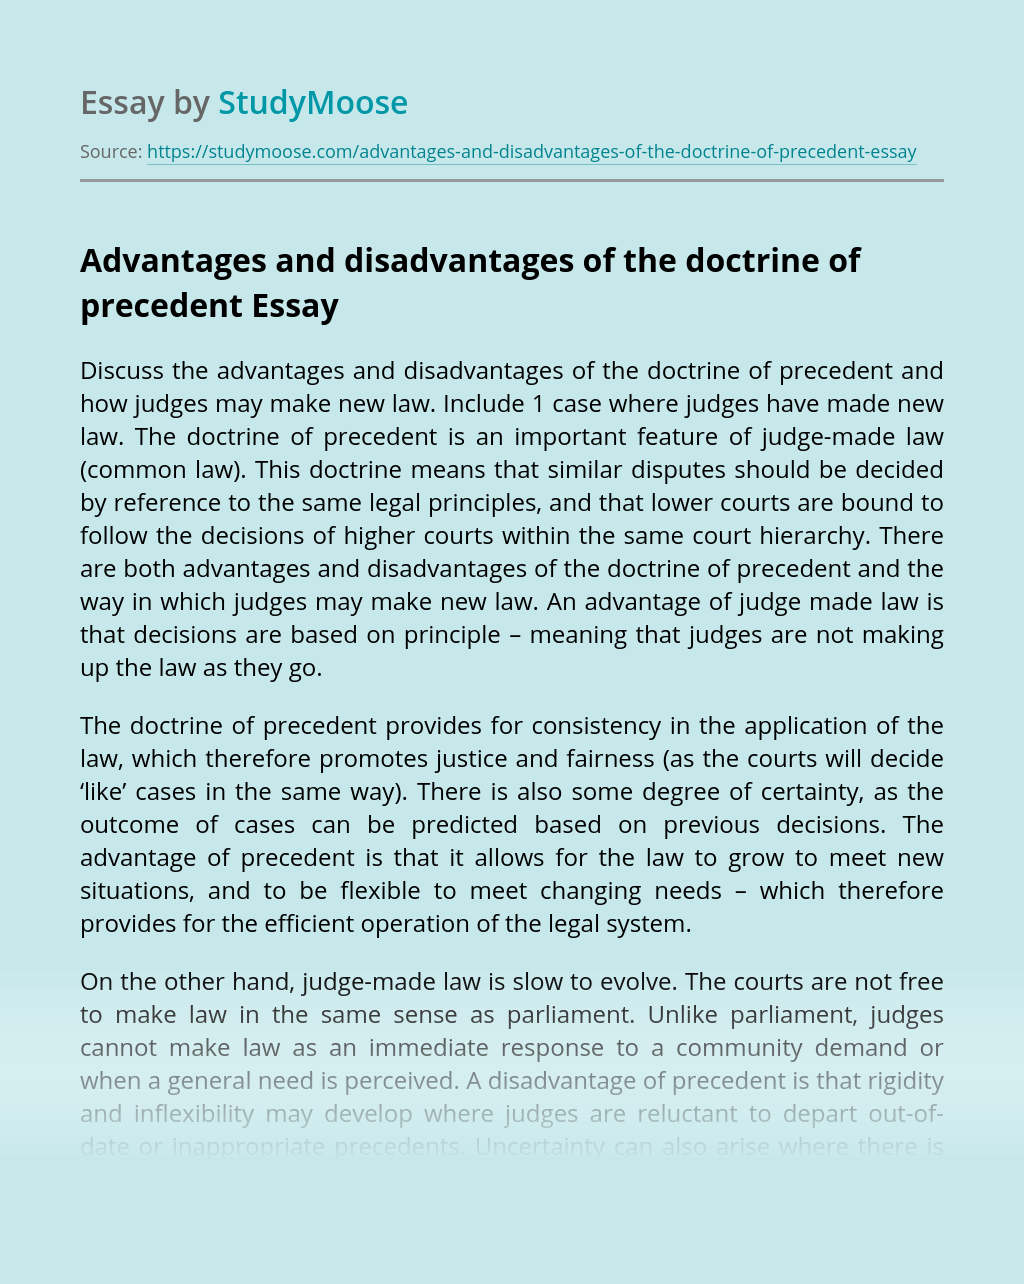 Advantages and Disadvantages of the Doctrine of Precedent